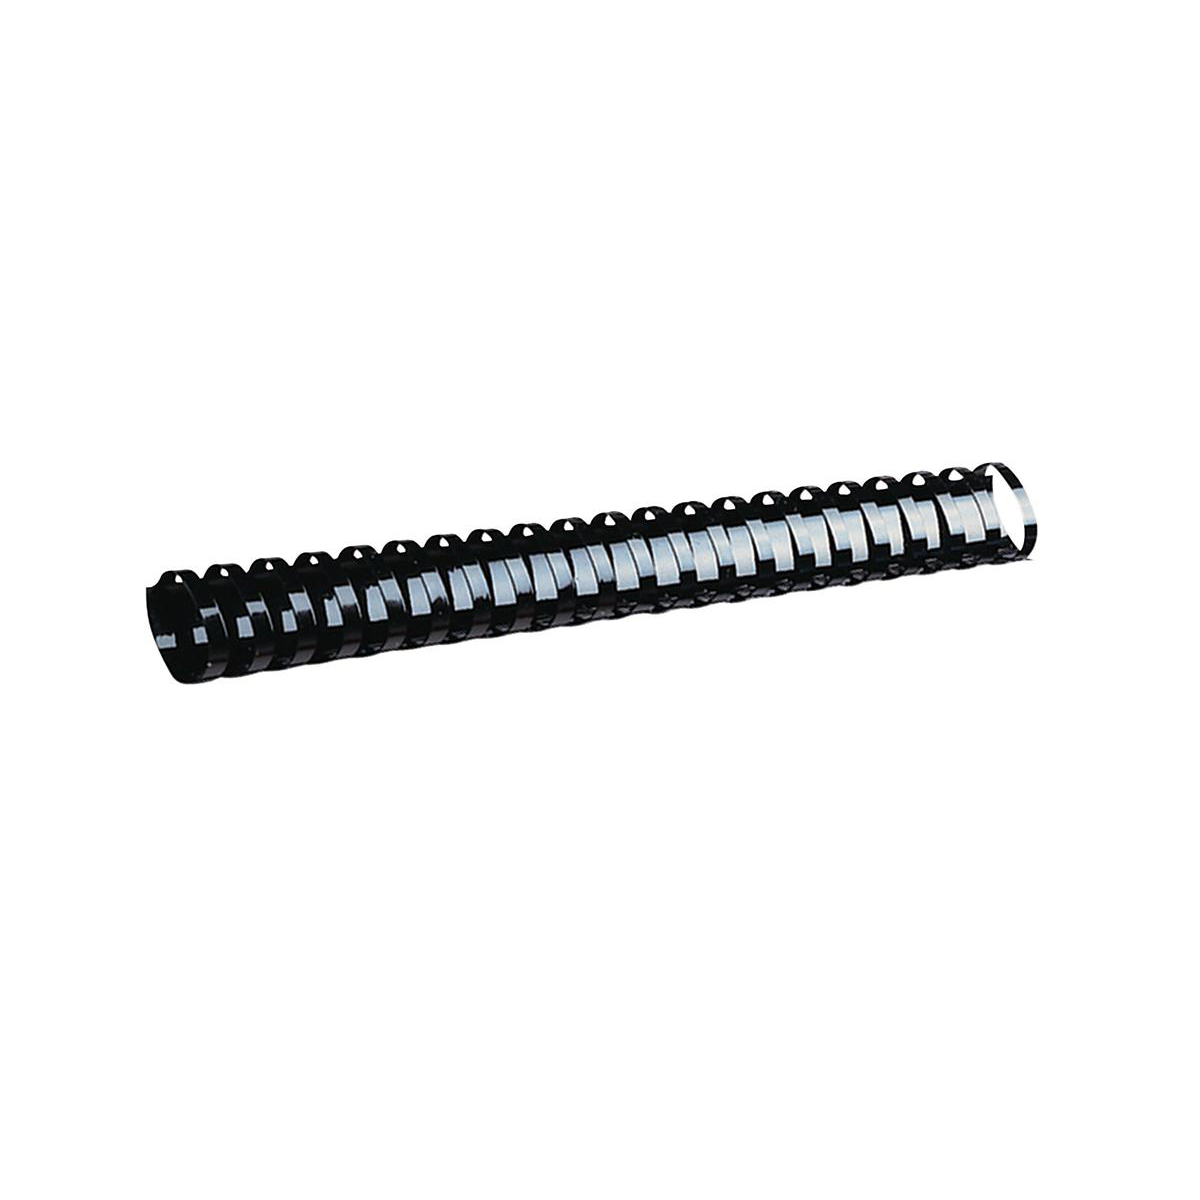 Binding Combs GBC Binding Combs Plastic 21 Ring 125 Sheets A4 14mm Black Ref 4028178 Pack 100